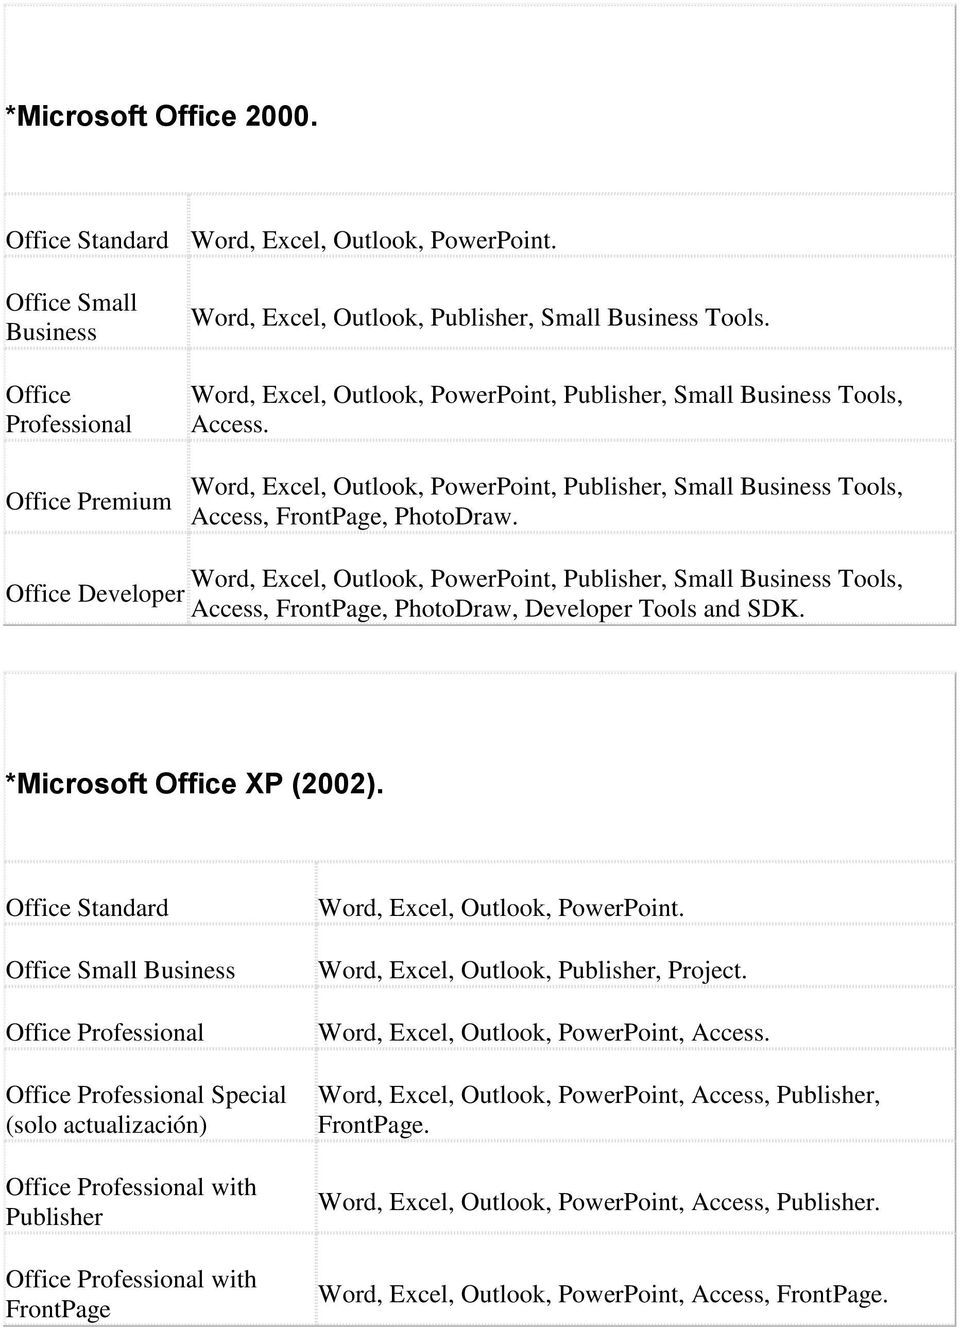 Office Developer Word, Excel, Outlook, PowerPoint, Publisher, Small Business Tools, Access, FrontPage, PhotoDraw, Developer Tools and SDK. *Microsoft Office XP (2002).